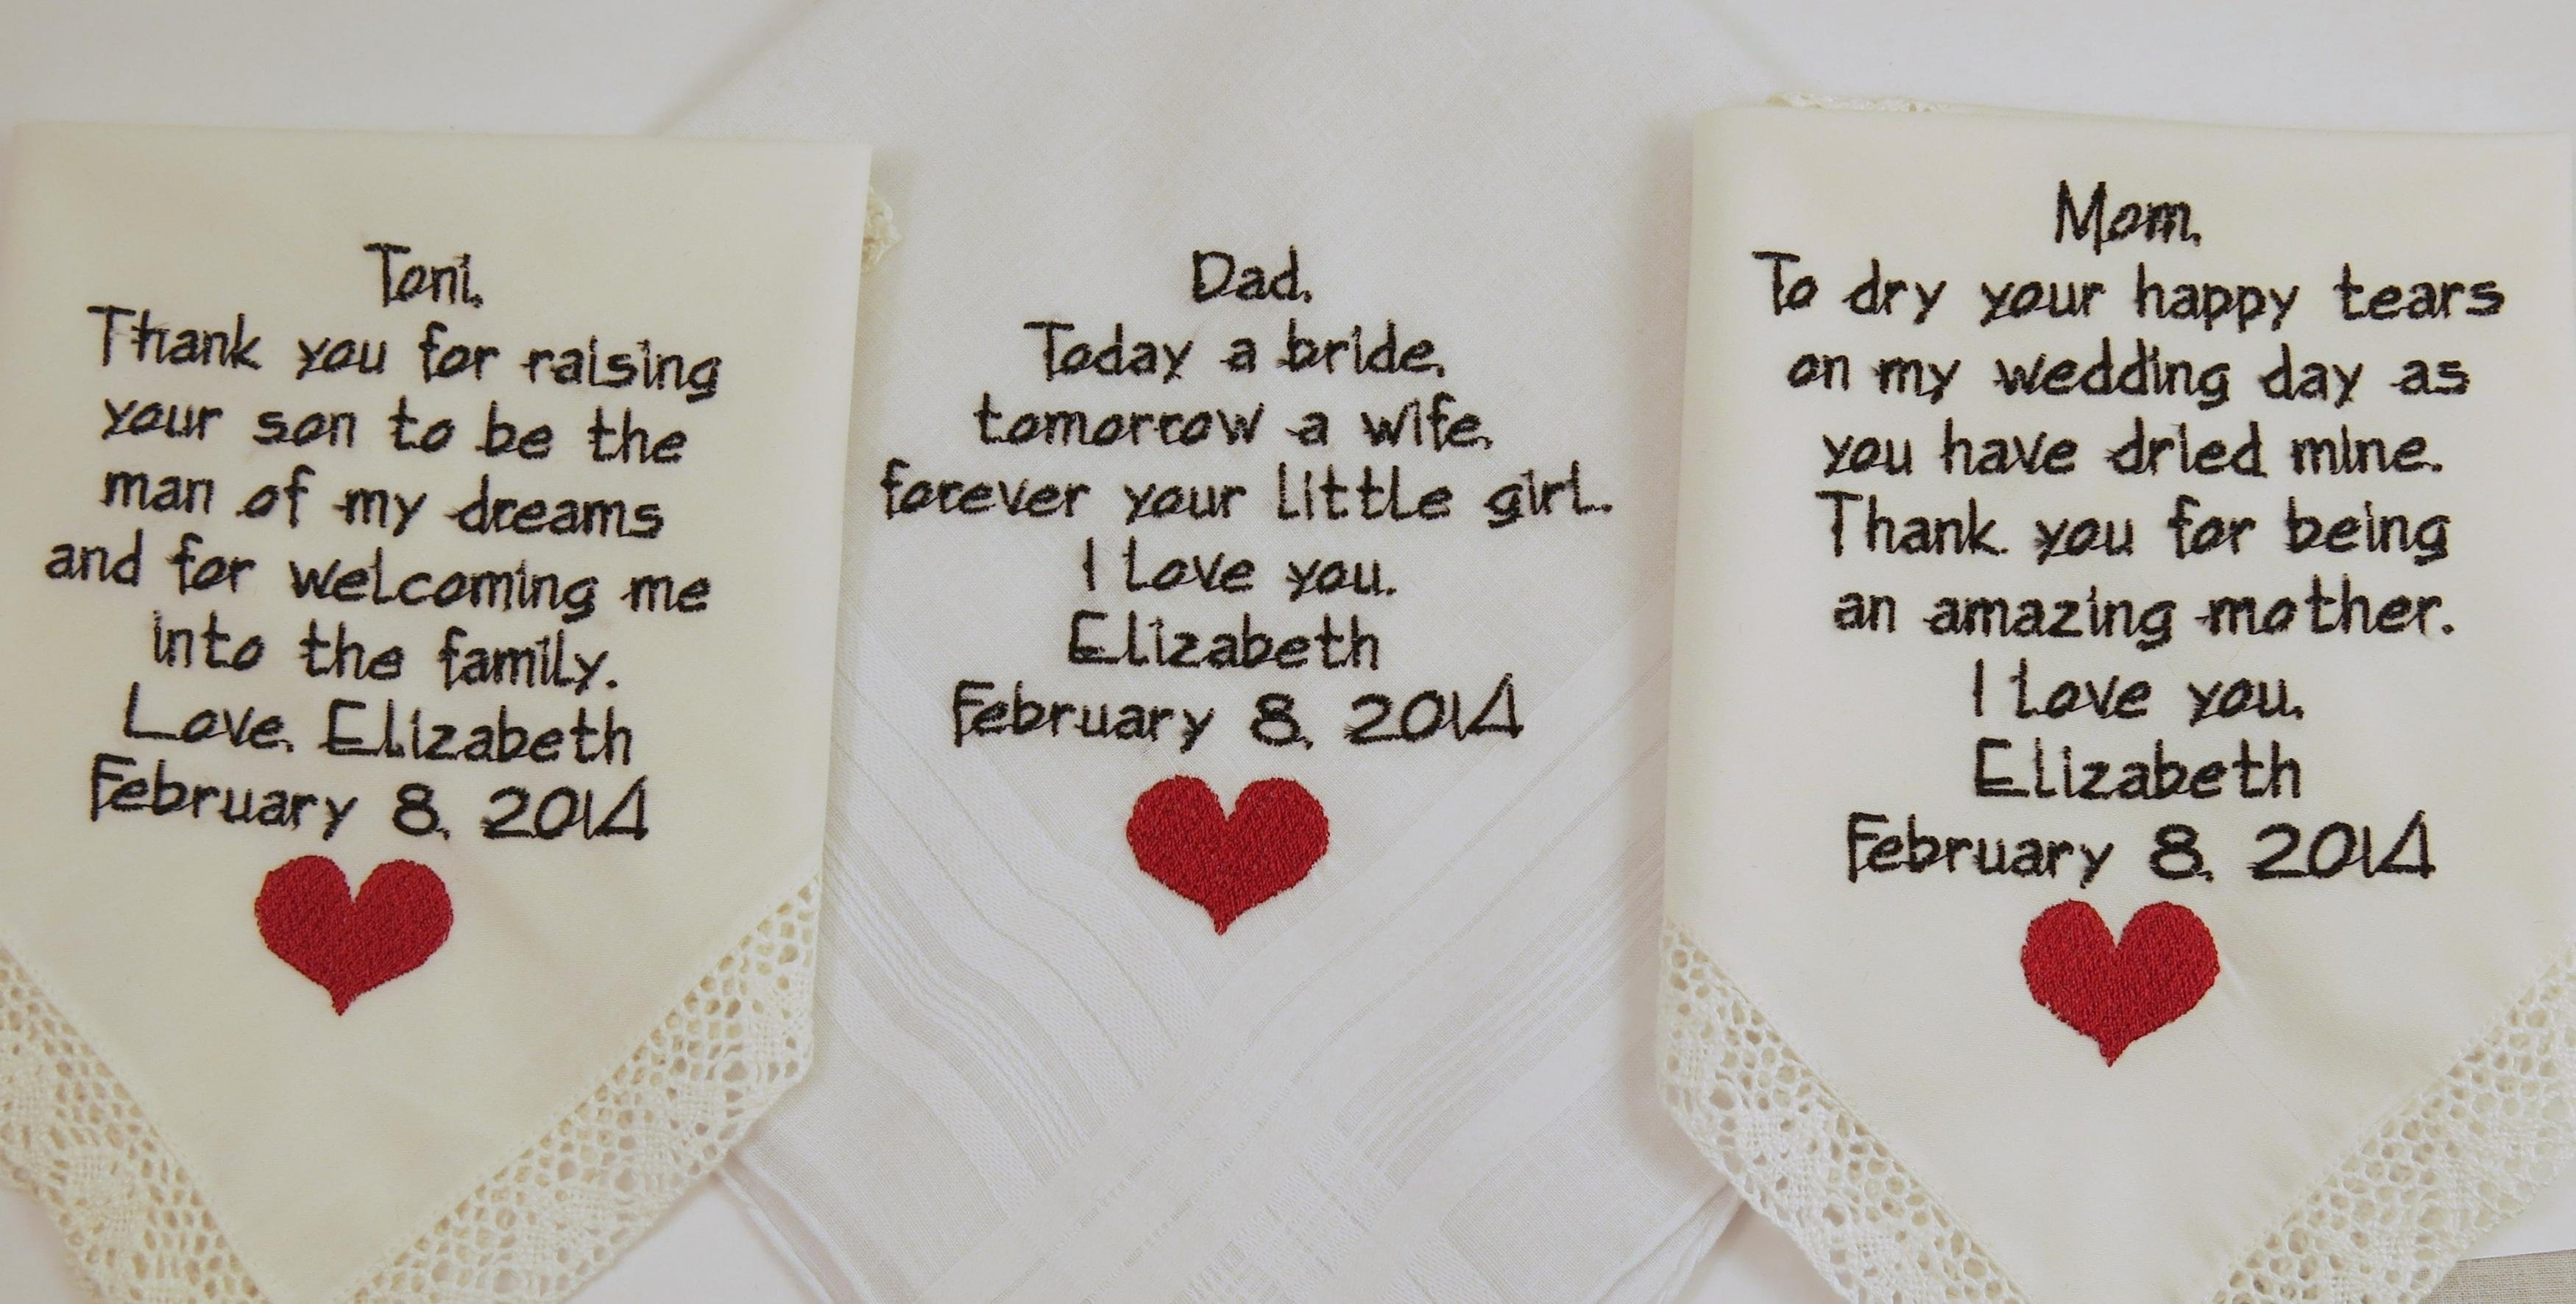 10 Beautiful Gift Ideas For Mother In Law mother father embroidered wedding hankerchiefs gift poem heart gift 2 2020